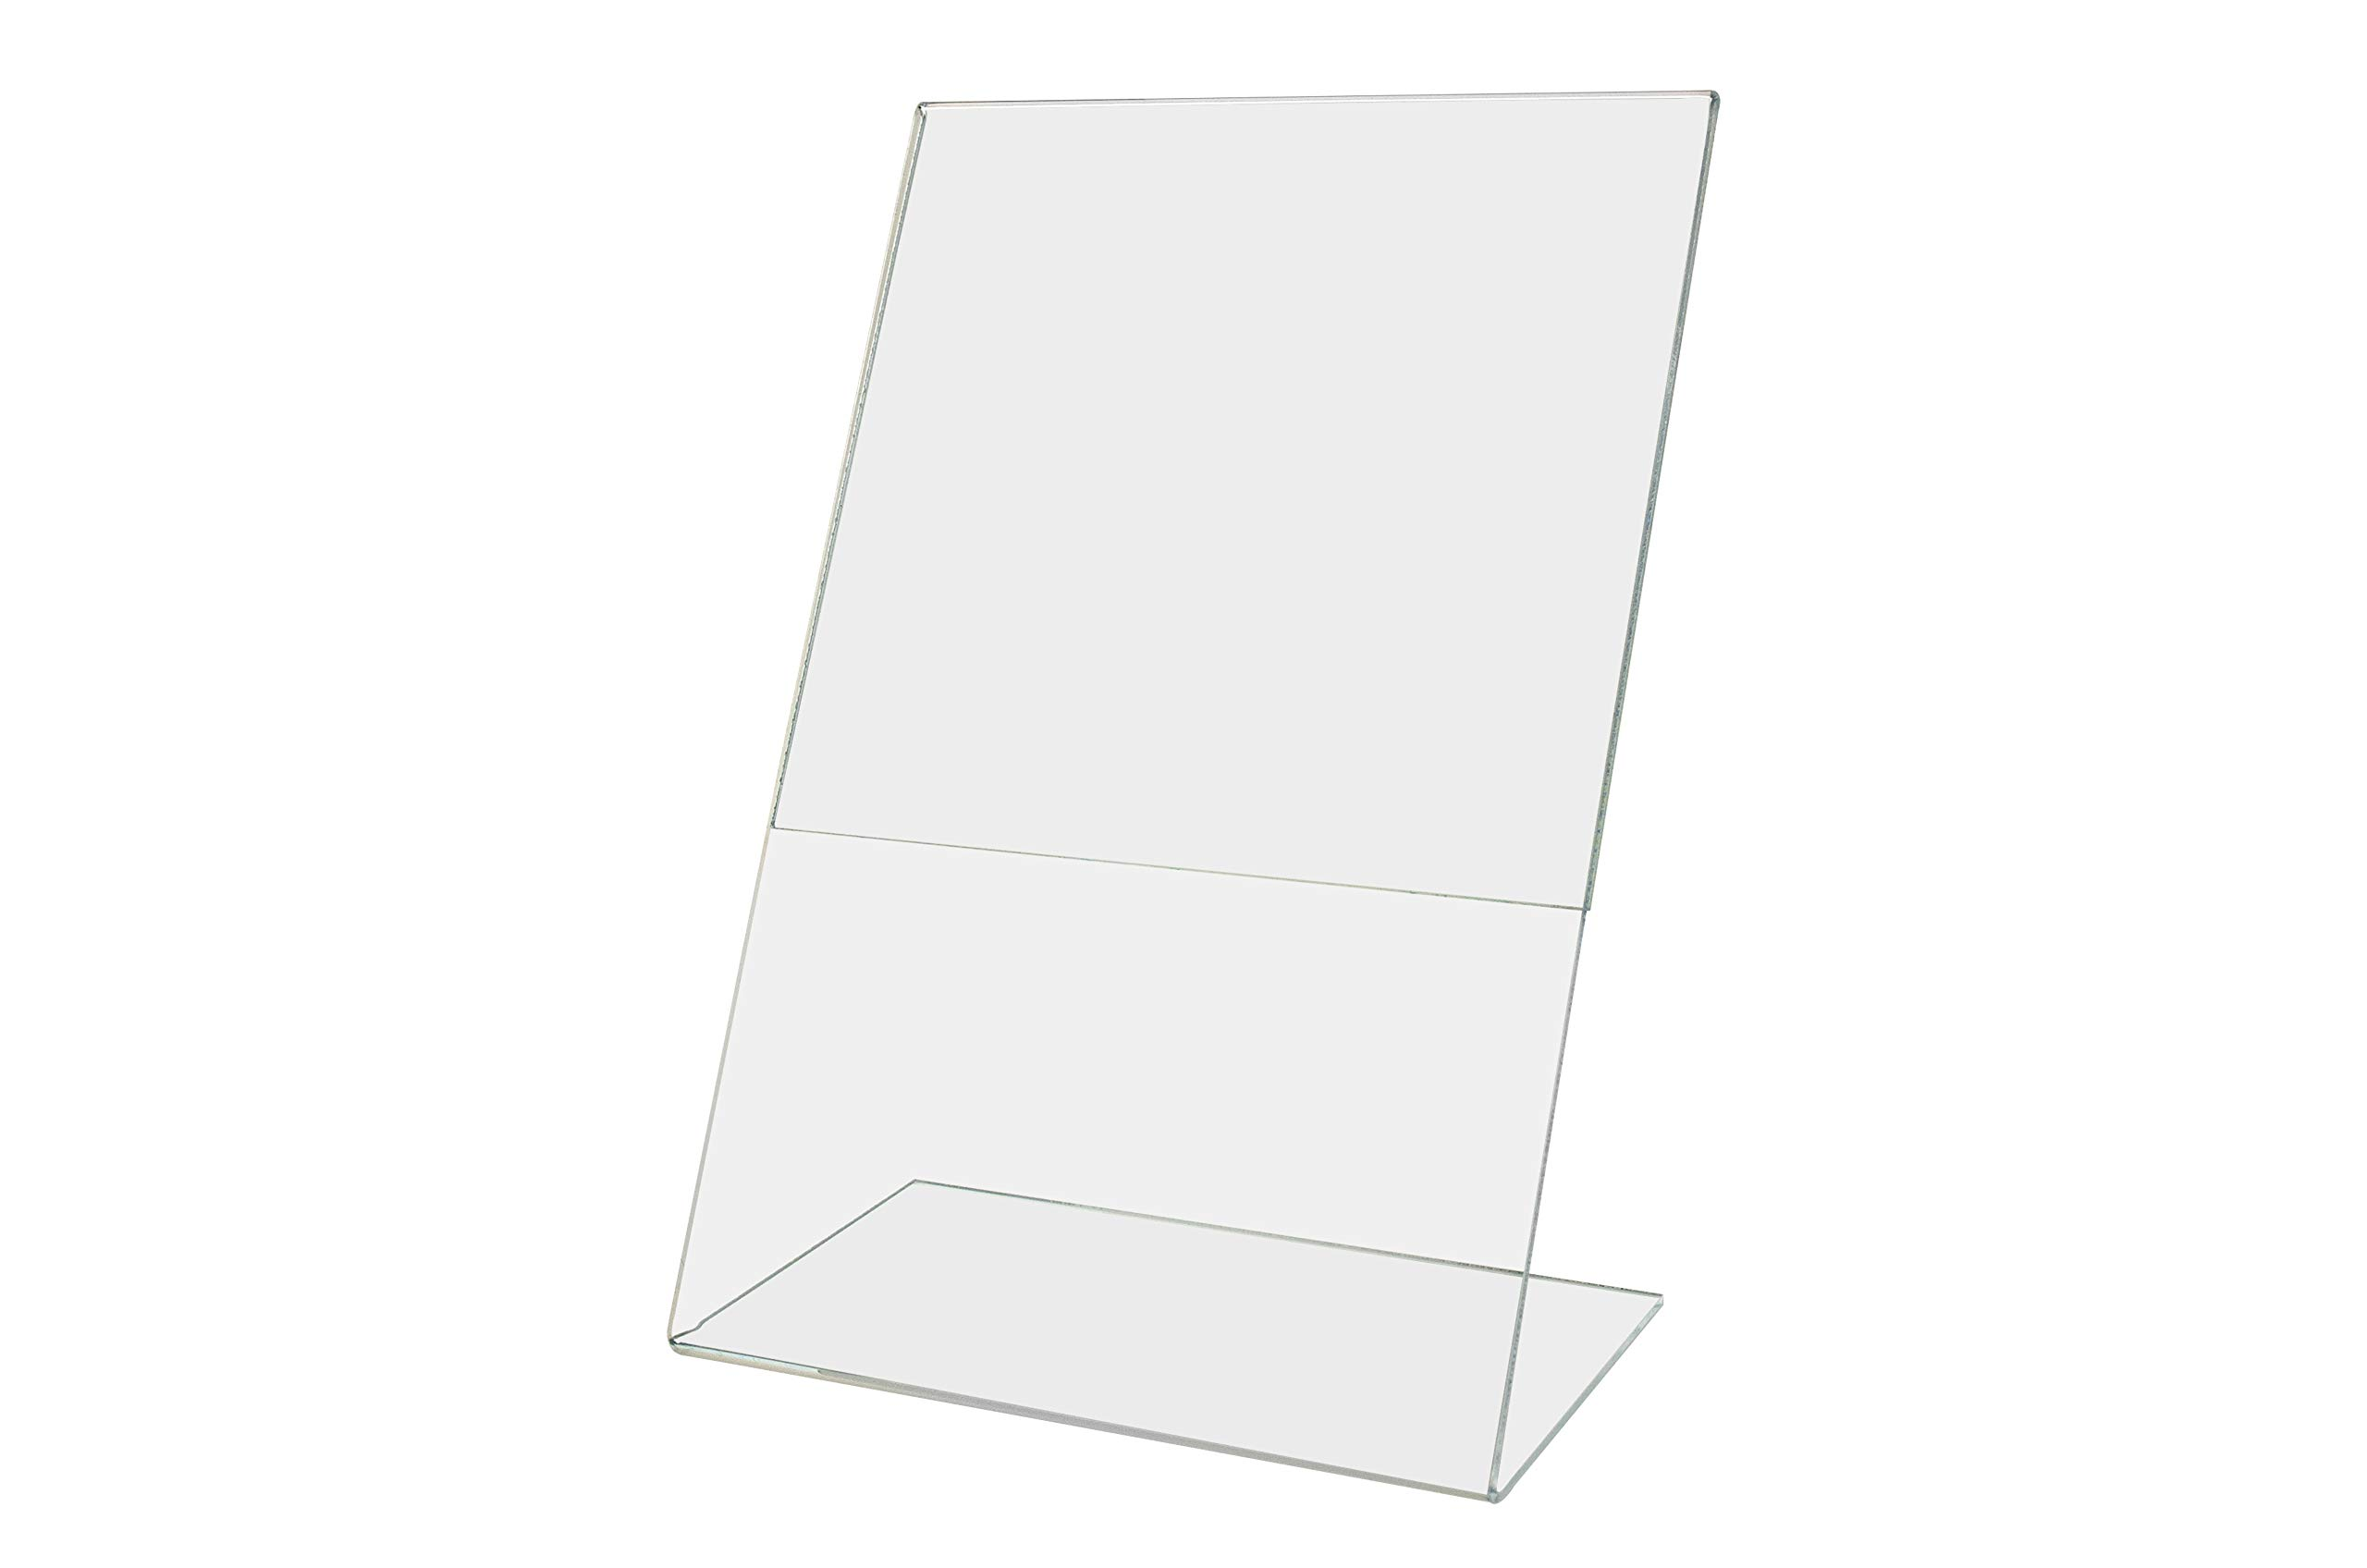 Marketing Holders Advertisement Literature Rack Clearance Price Signage Menu Drink Frame Flyer Poster Picture Display 6''w x 9''h Pack of 10